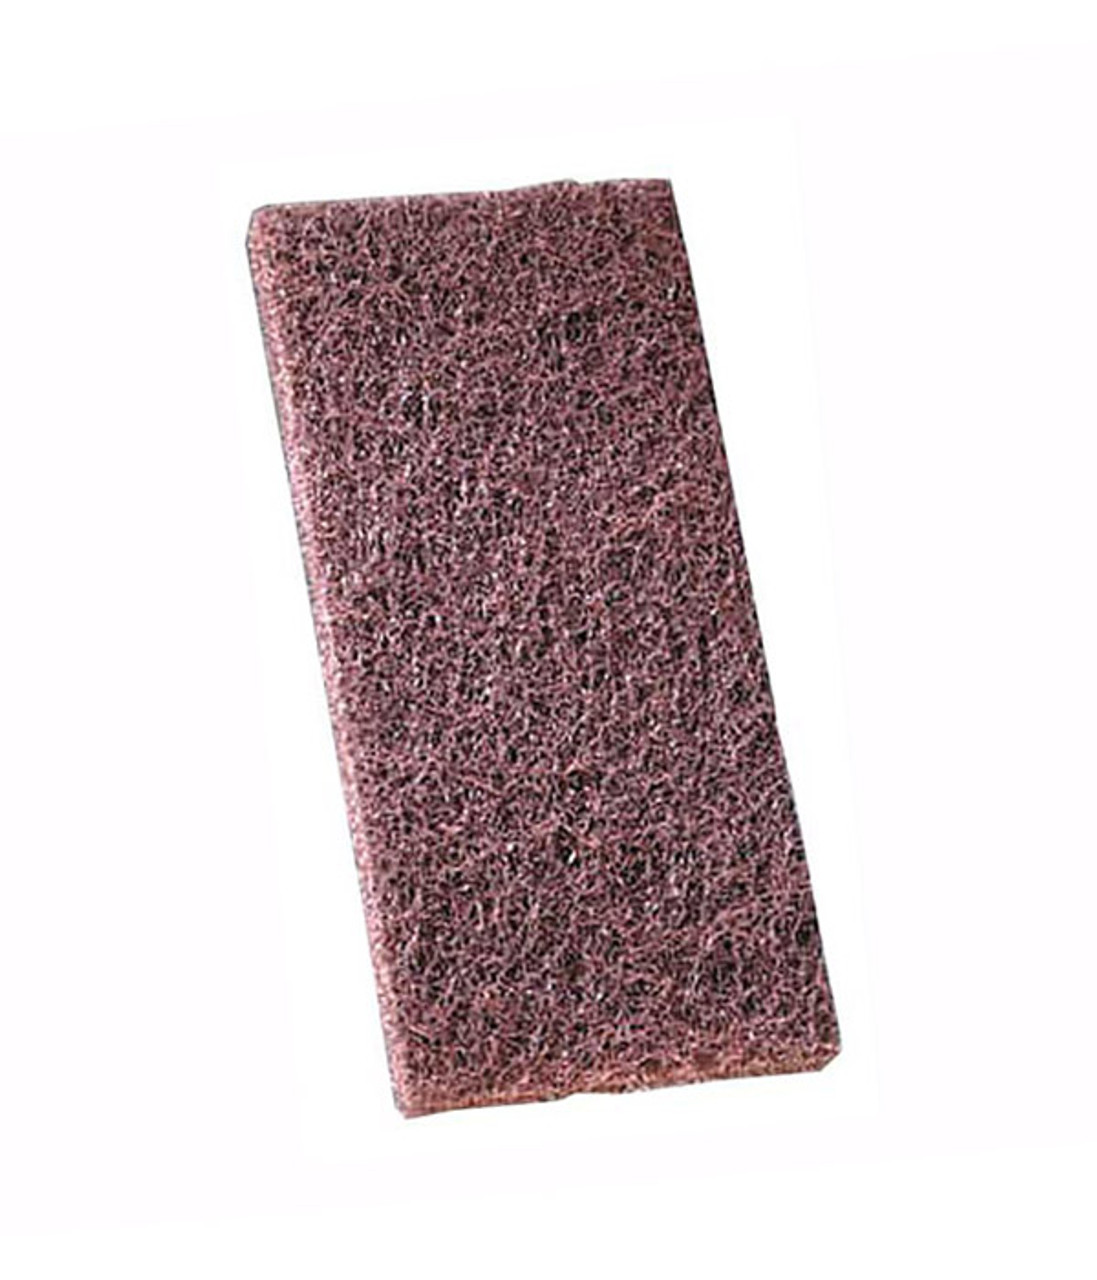 3M Doodlebug 8541 Brown Scrub 'n Strip Pad - For tough jobs like scrubbing hard floors and removing floor finish or wax.